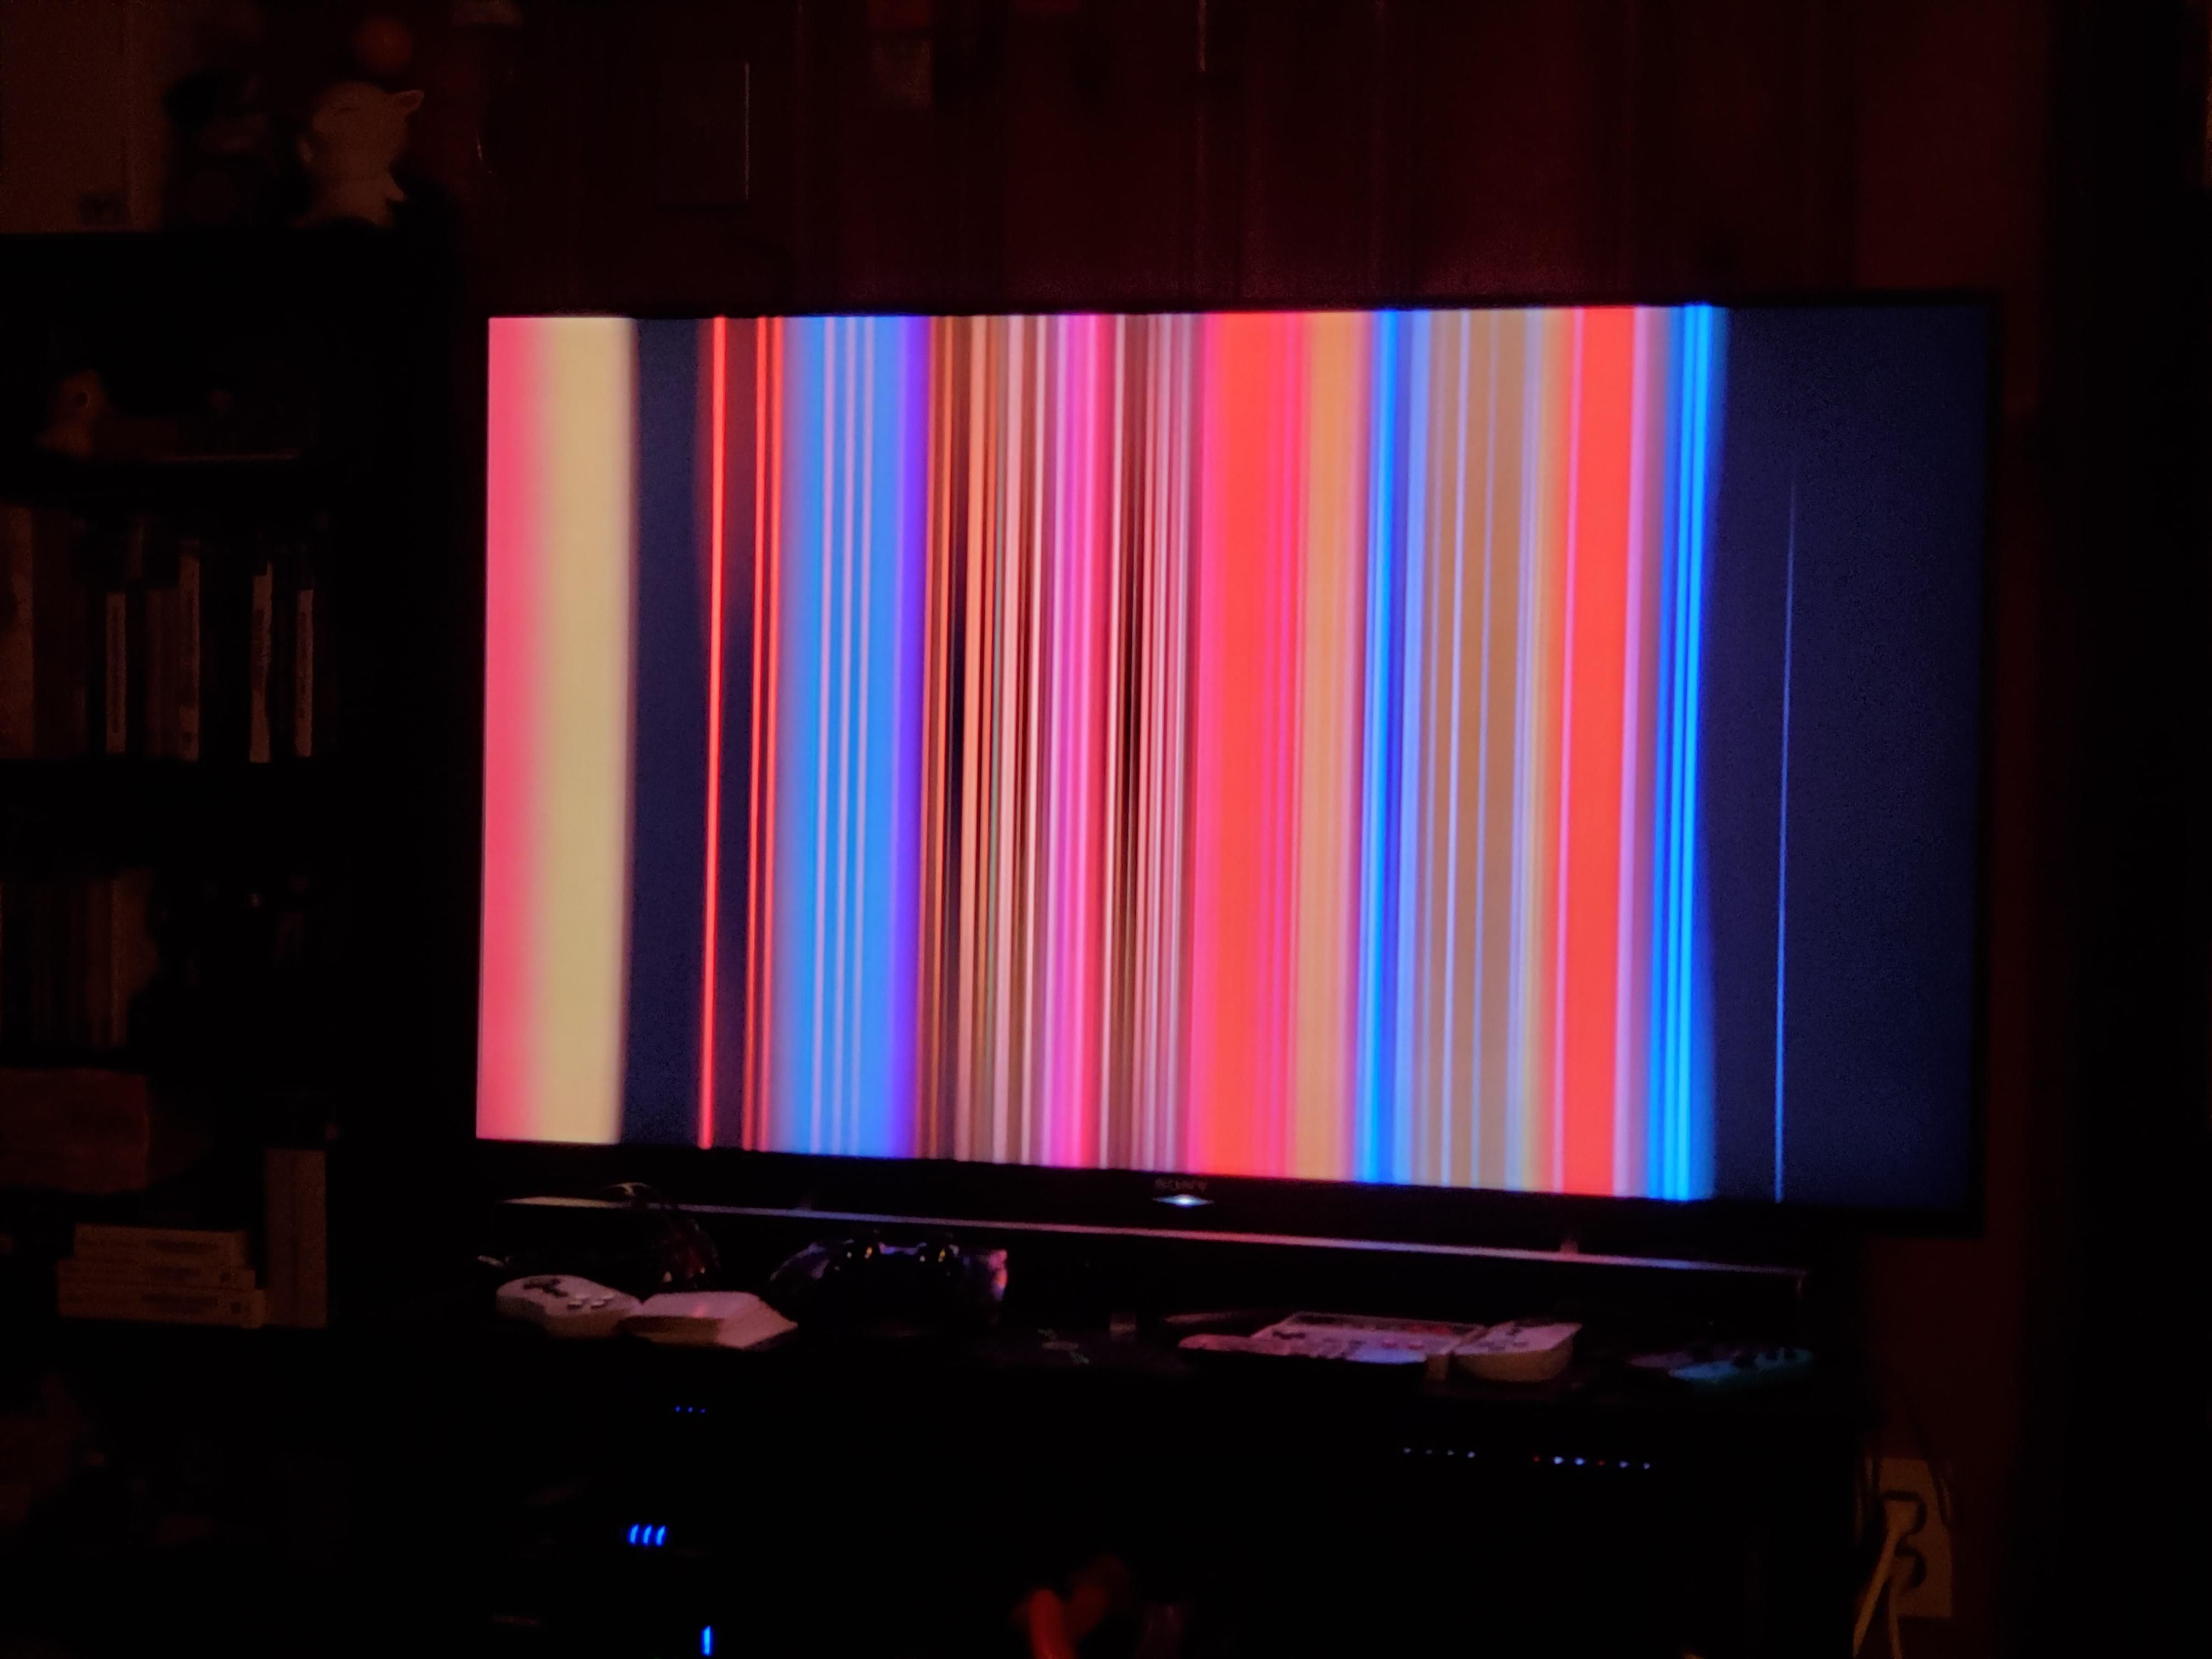 Walked in and thought the TV got smashed, wife just paused on the Netflix intro.